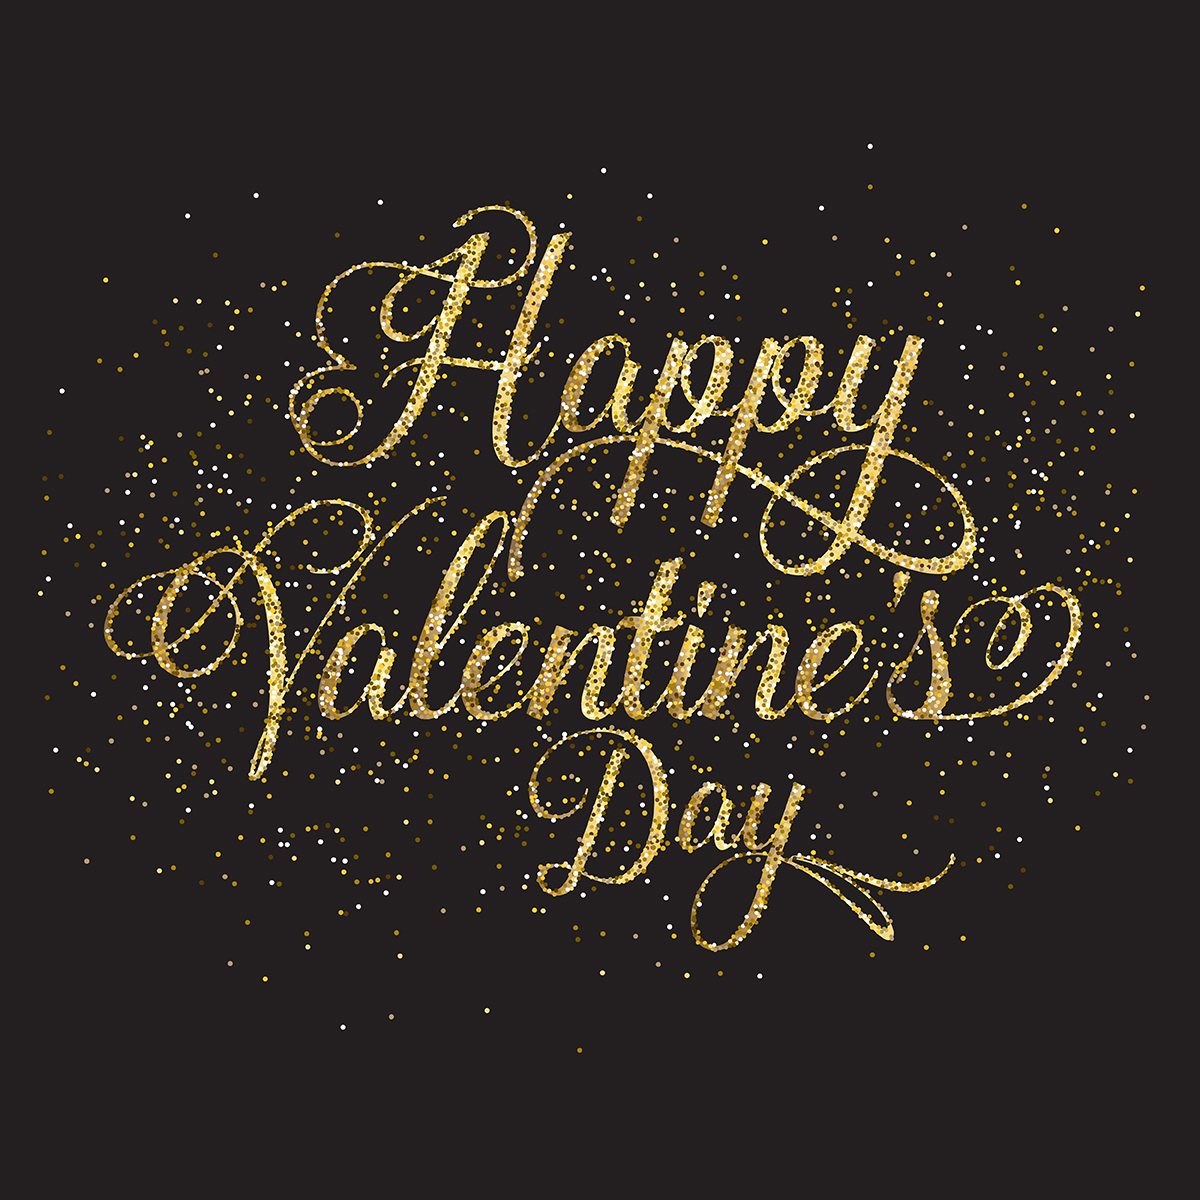 Glitter Gold: Gold Glitter Valentine's Day Text